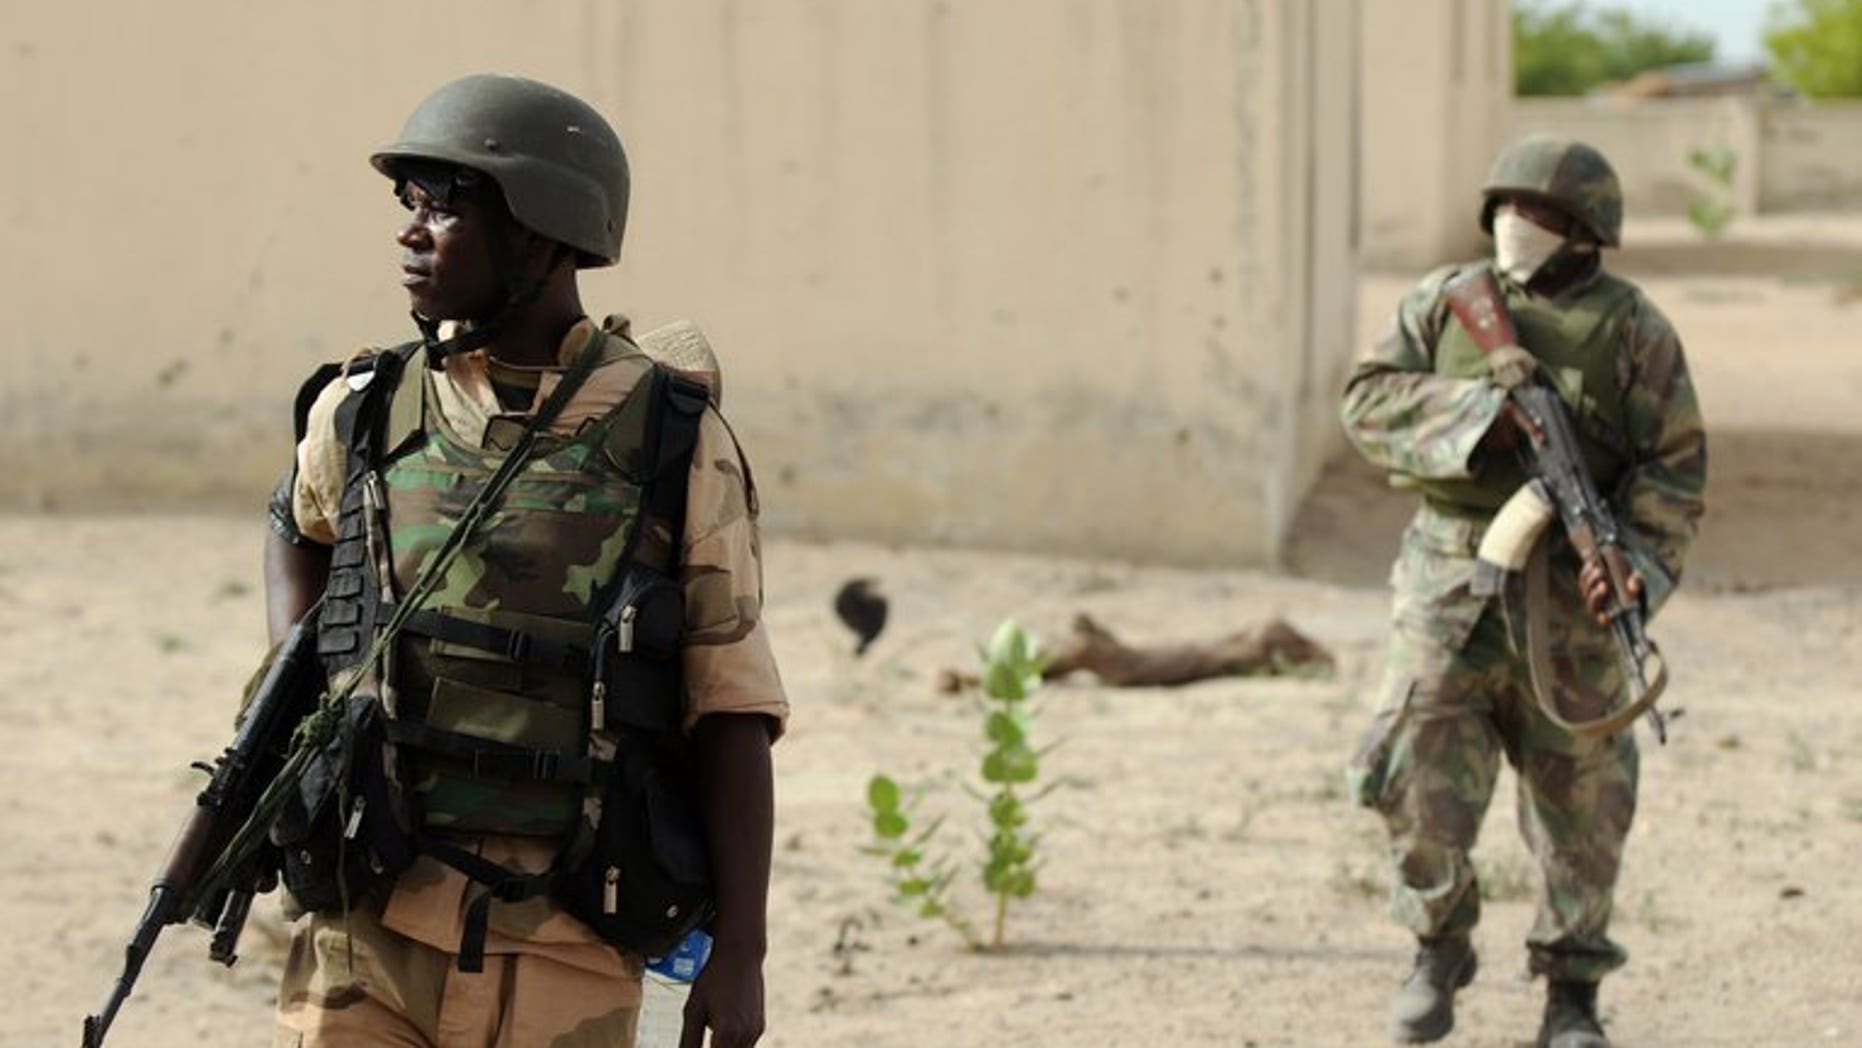 Nigerian soldiers patrol near Maiduguri on June 5, 2013. Nigeria's military said it had killed the second-in-command of Islamist group Boko Haram while repelling an insurgent attack earlier this month.